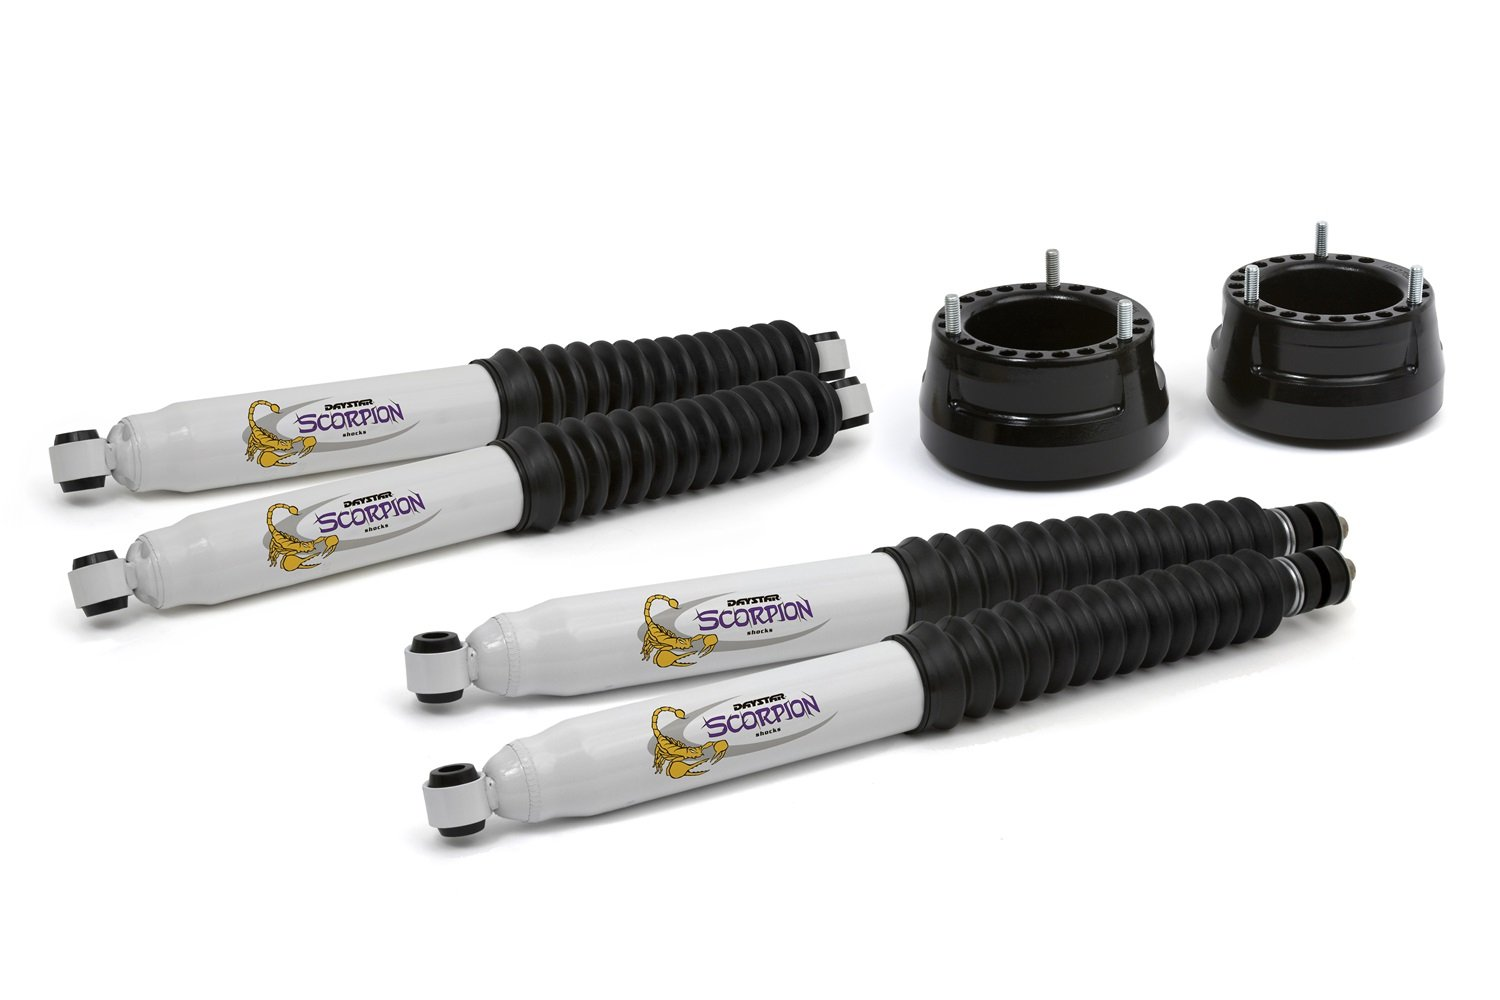 Daystar, Dodge Ram 2' Leveling Kit with front and rear shocks, fits 2005 to 2010 1500 Mega Cab, 1994 to 2013 2500/3500 4WD, all transmissions, all cabs KC09118BK, Black, Made in America Dodge Ram 2 Leveling Kit with front and rear shocks